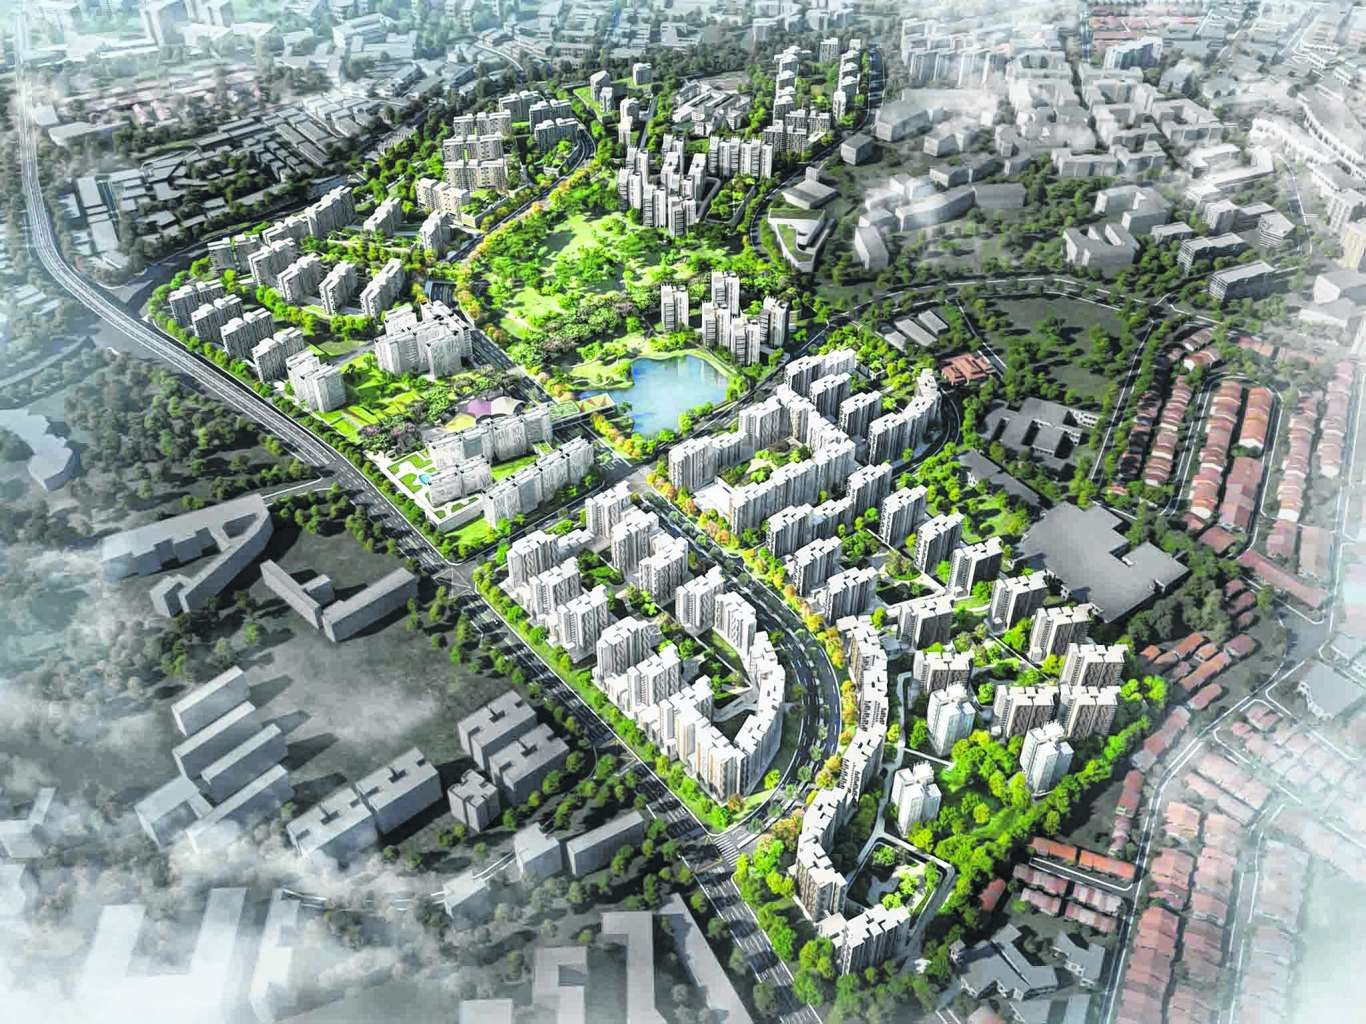 An artist's birds eye view impression of the Bidadari New Town.